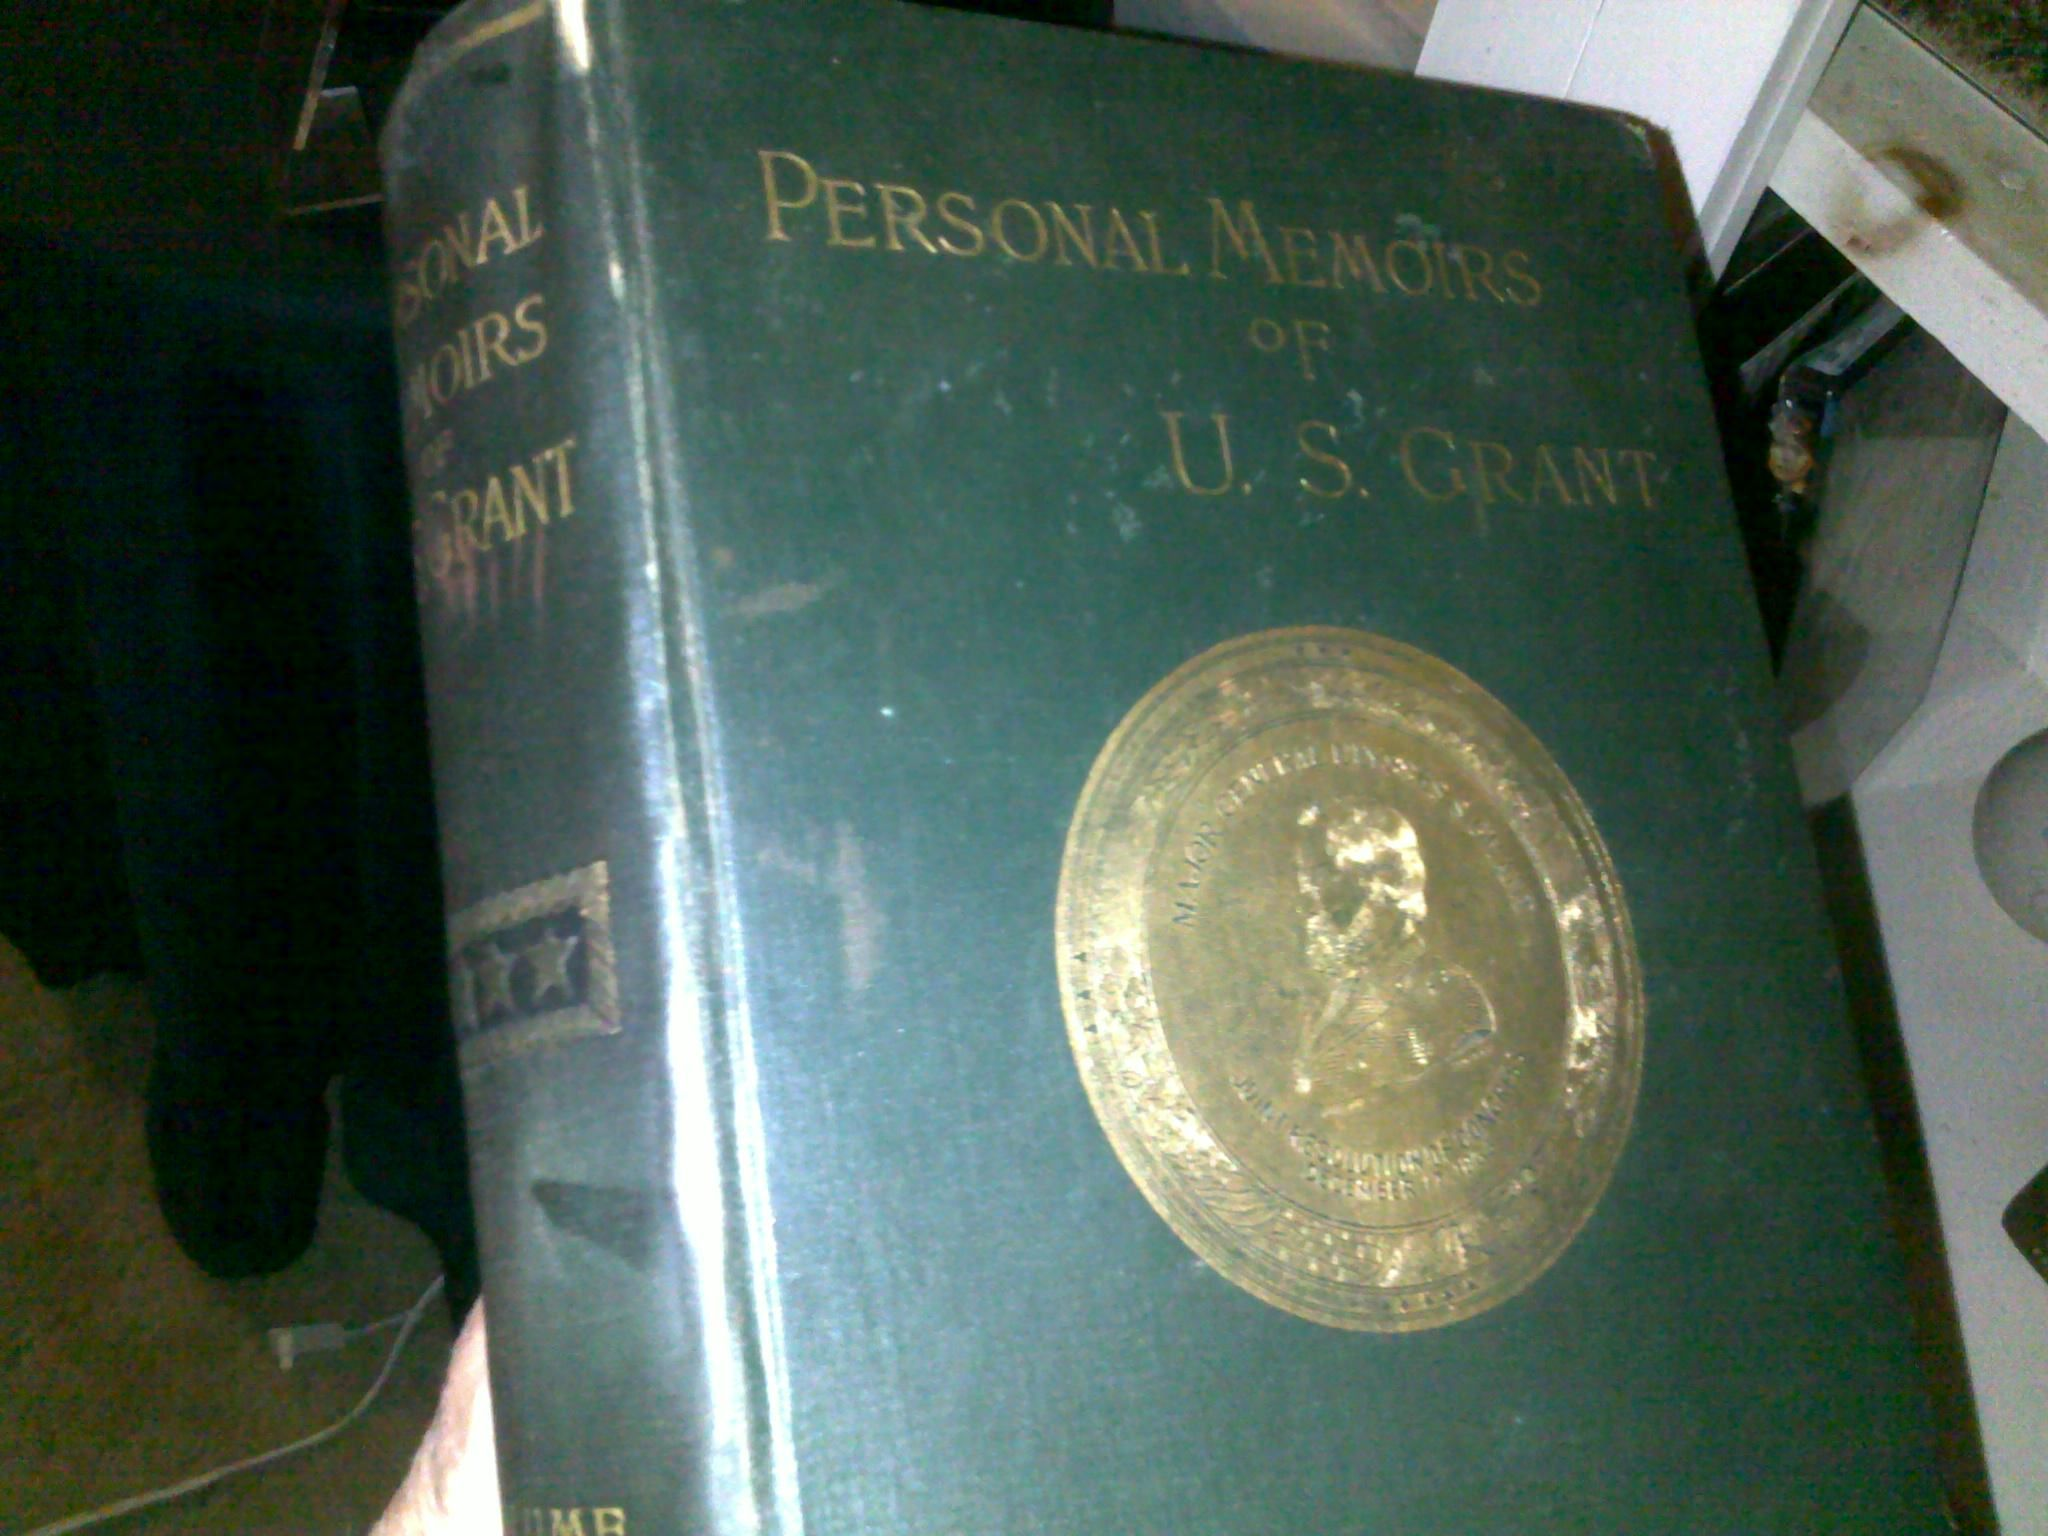 Personal memoirs of u s grant 1885 first edition by